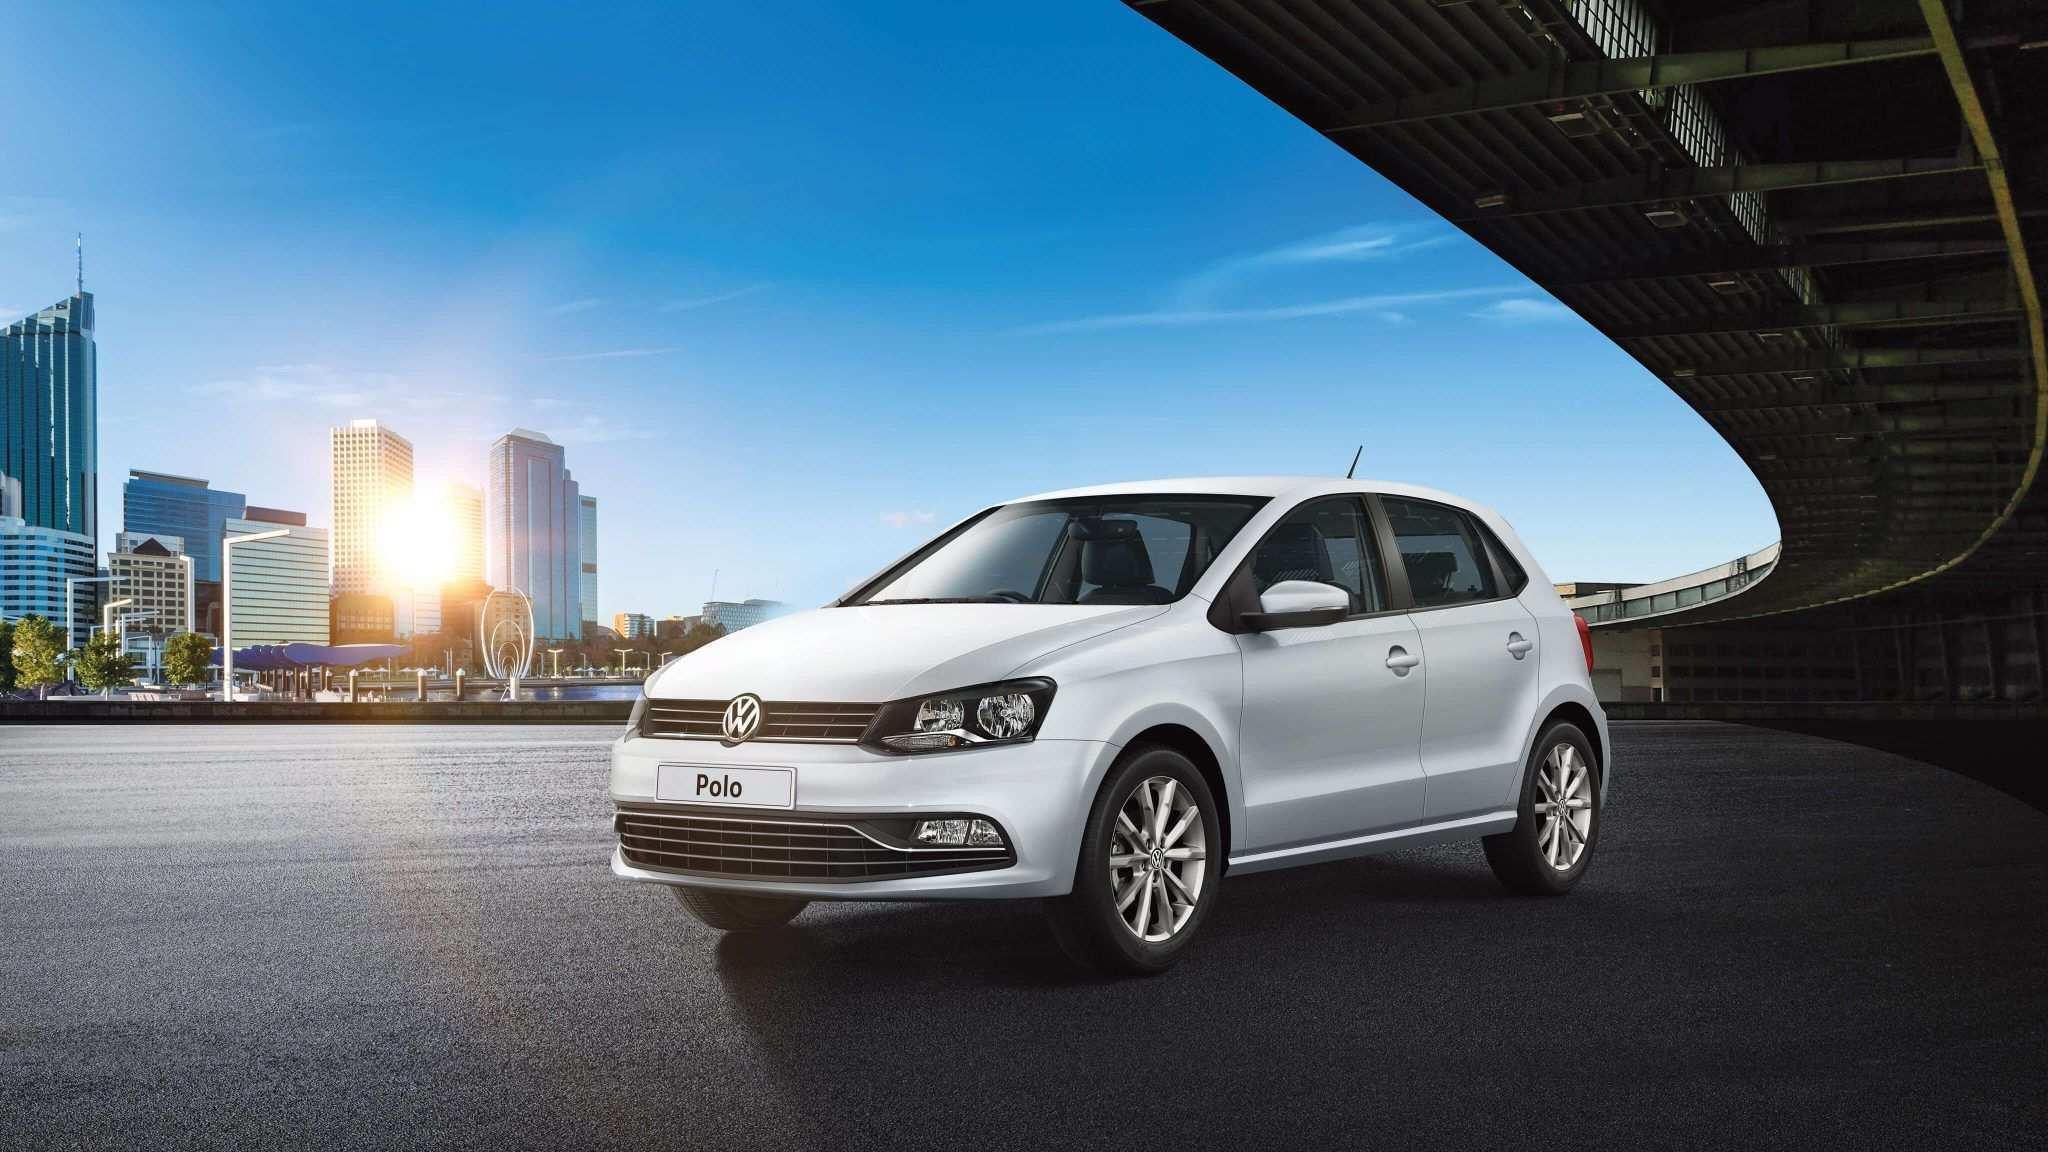 83 The Vw Polo 2019 India Price